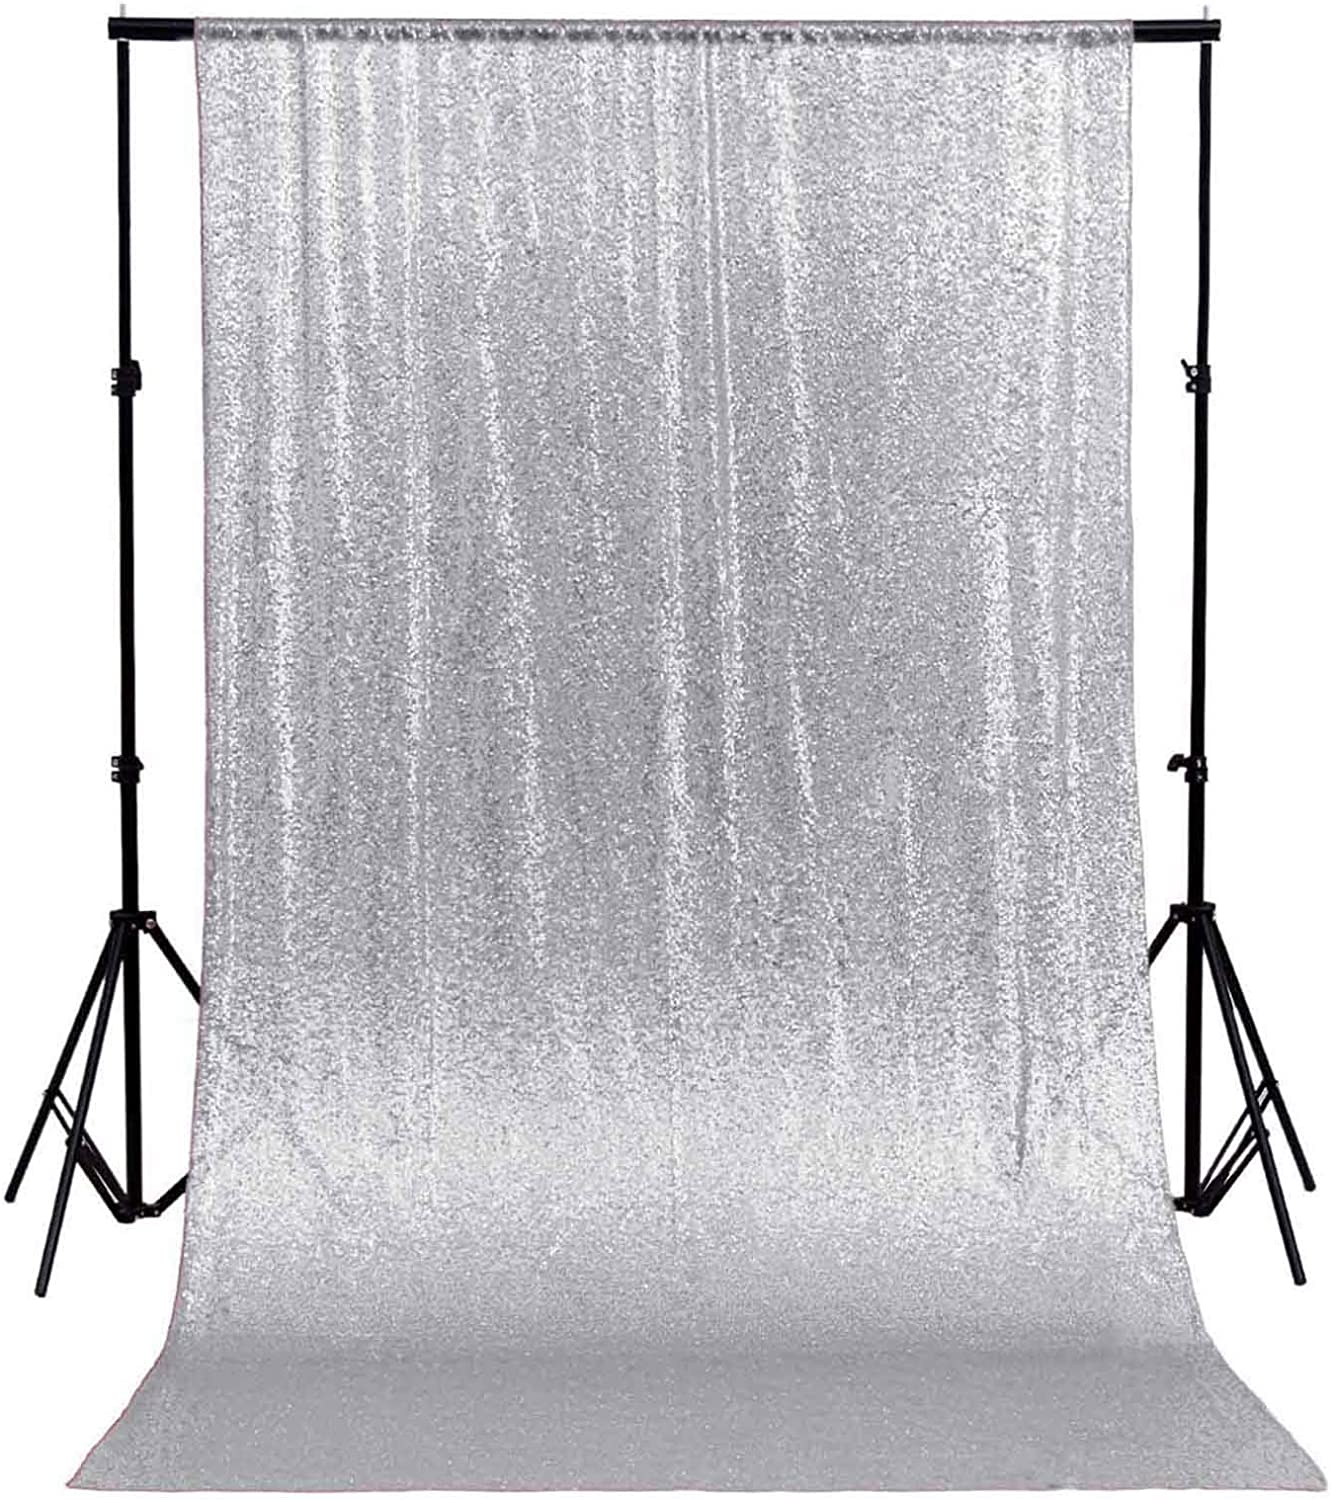 9x6FT Photo Booth Studio Props LYLU196 Wine Glass Shiny Black Background Cocktail Party Photography Backdrop